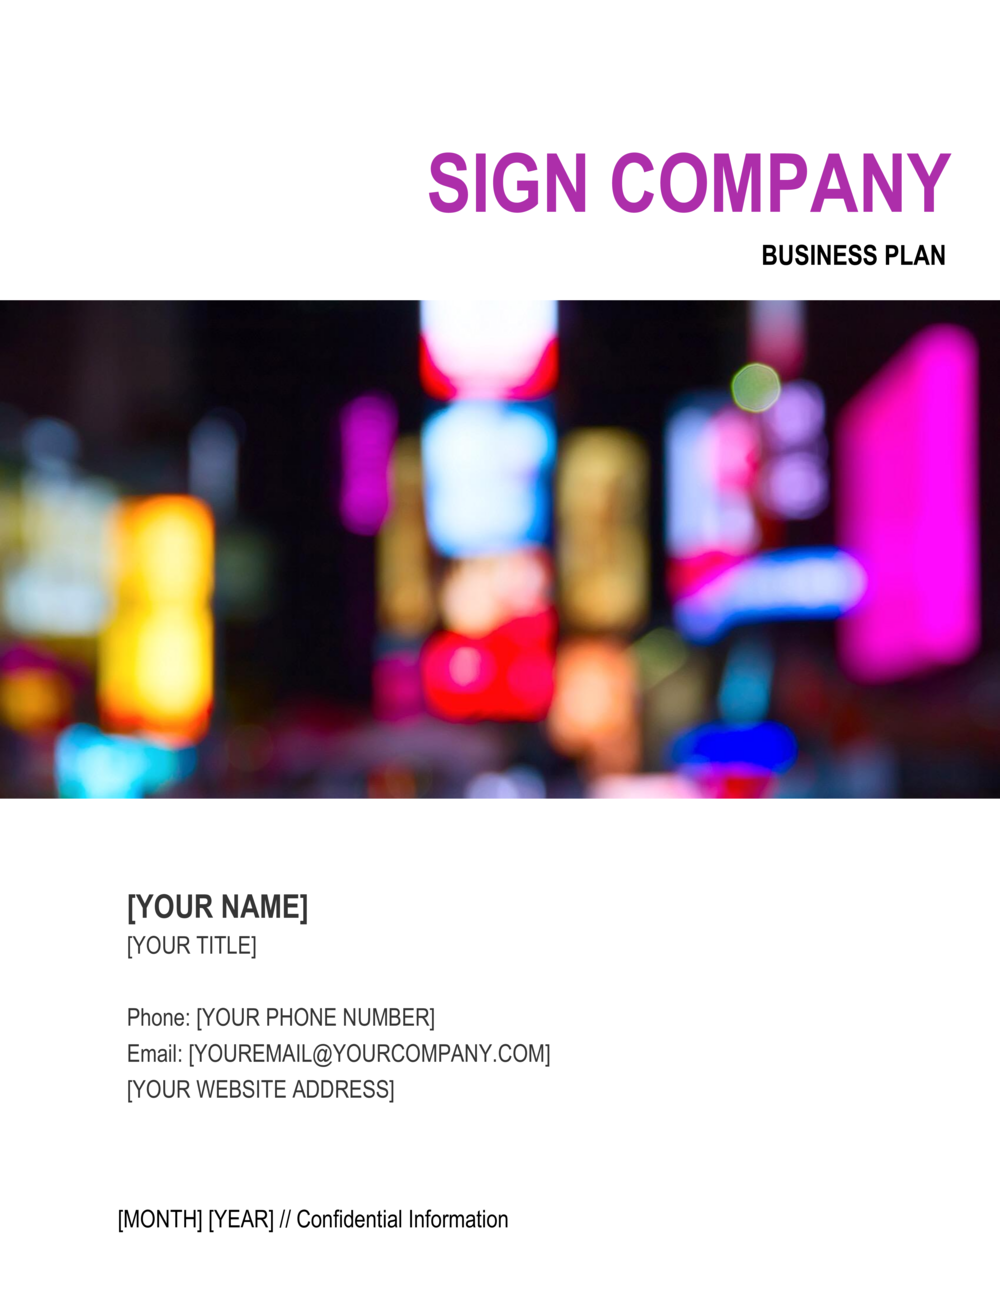 Business-in-a-Box's Sign Company Business Plan Template